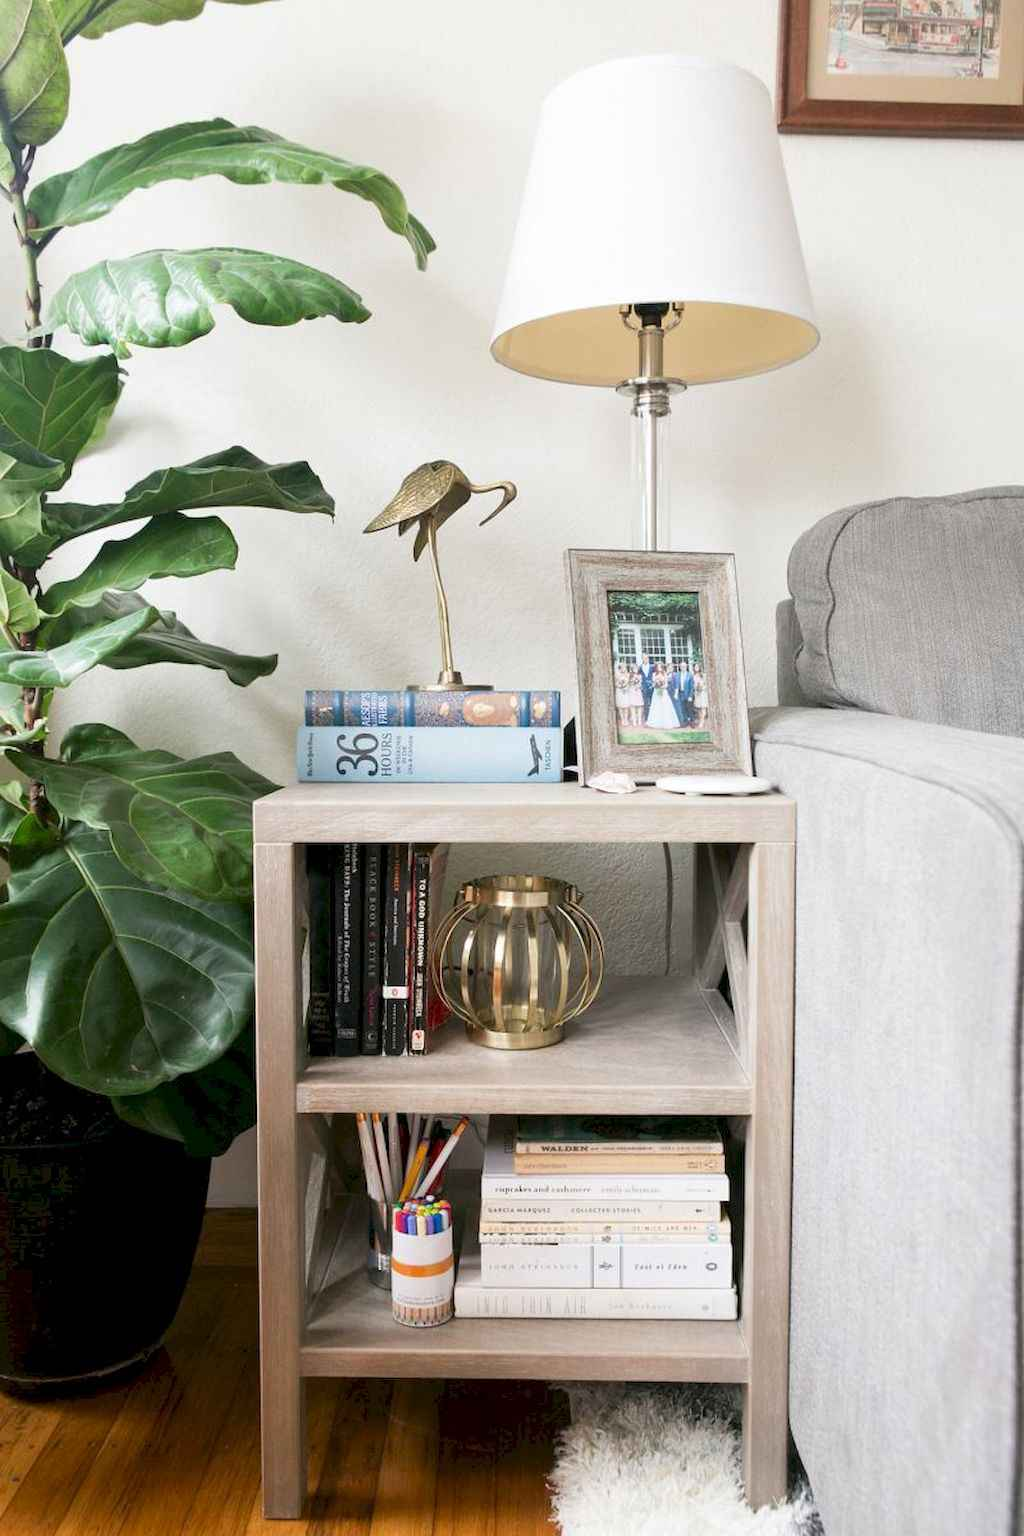 Couples first apartment decorating ideas (15)